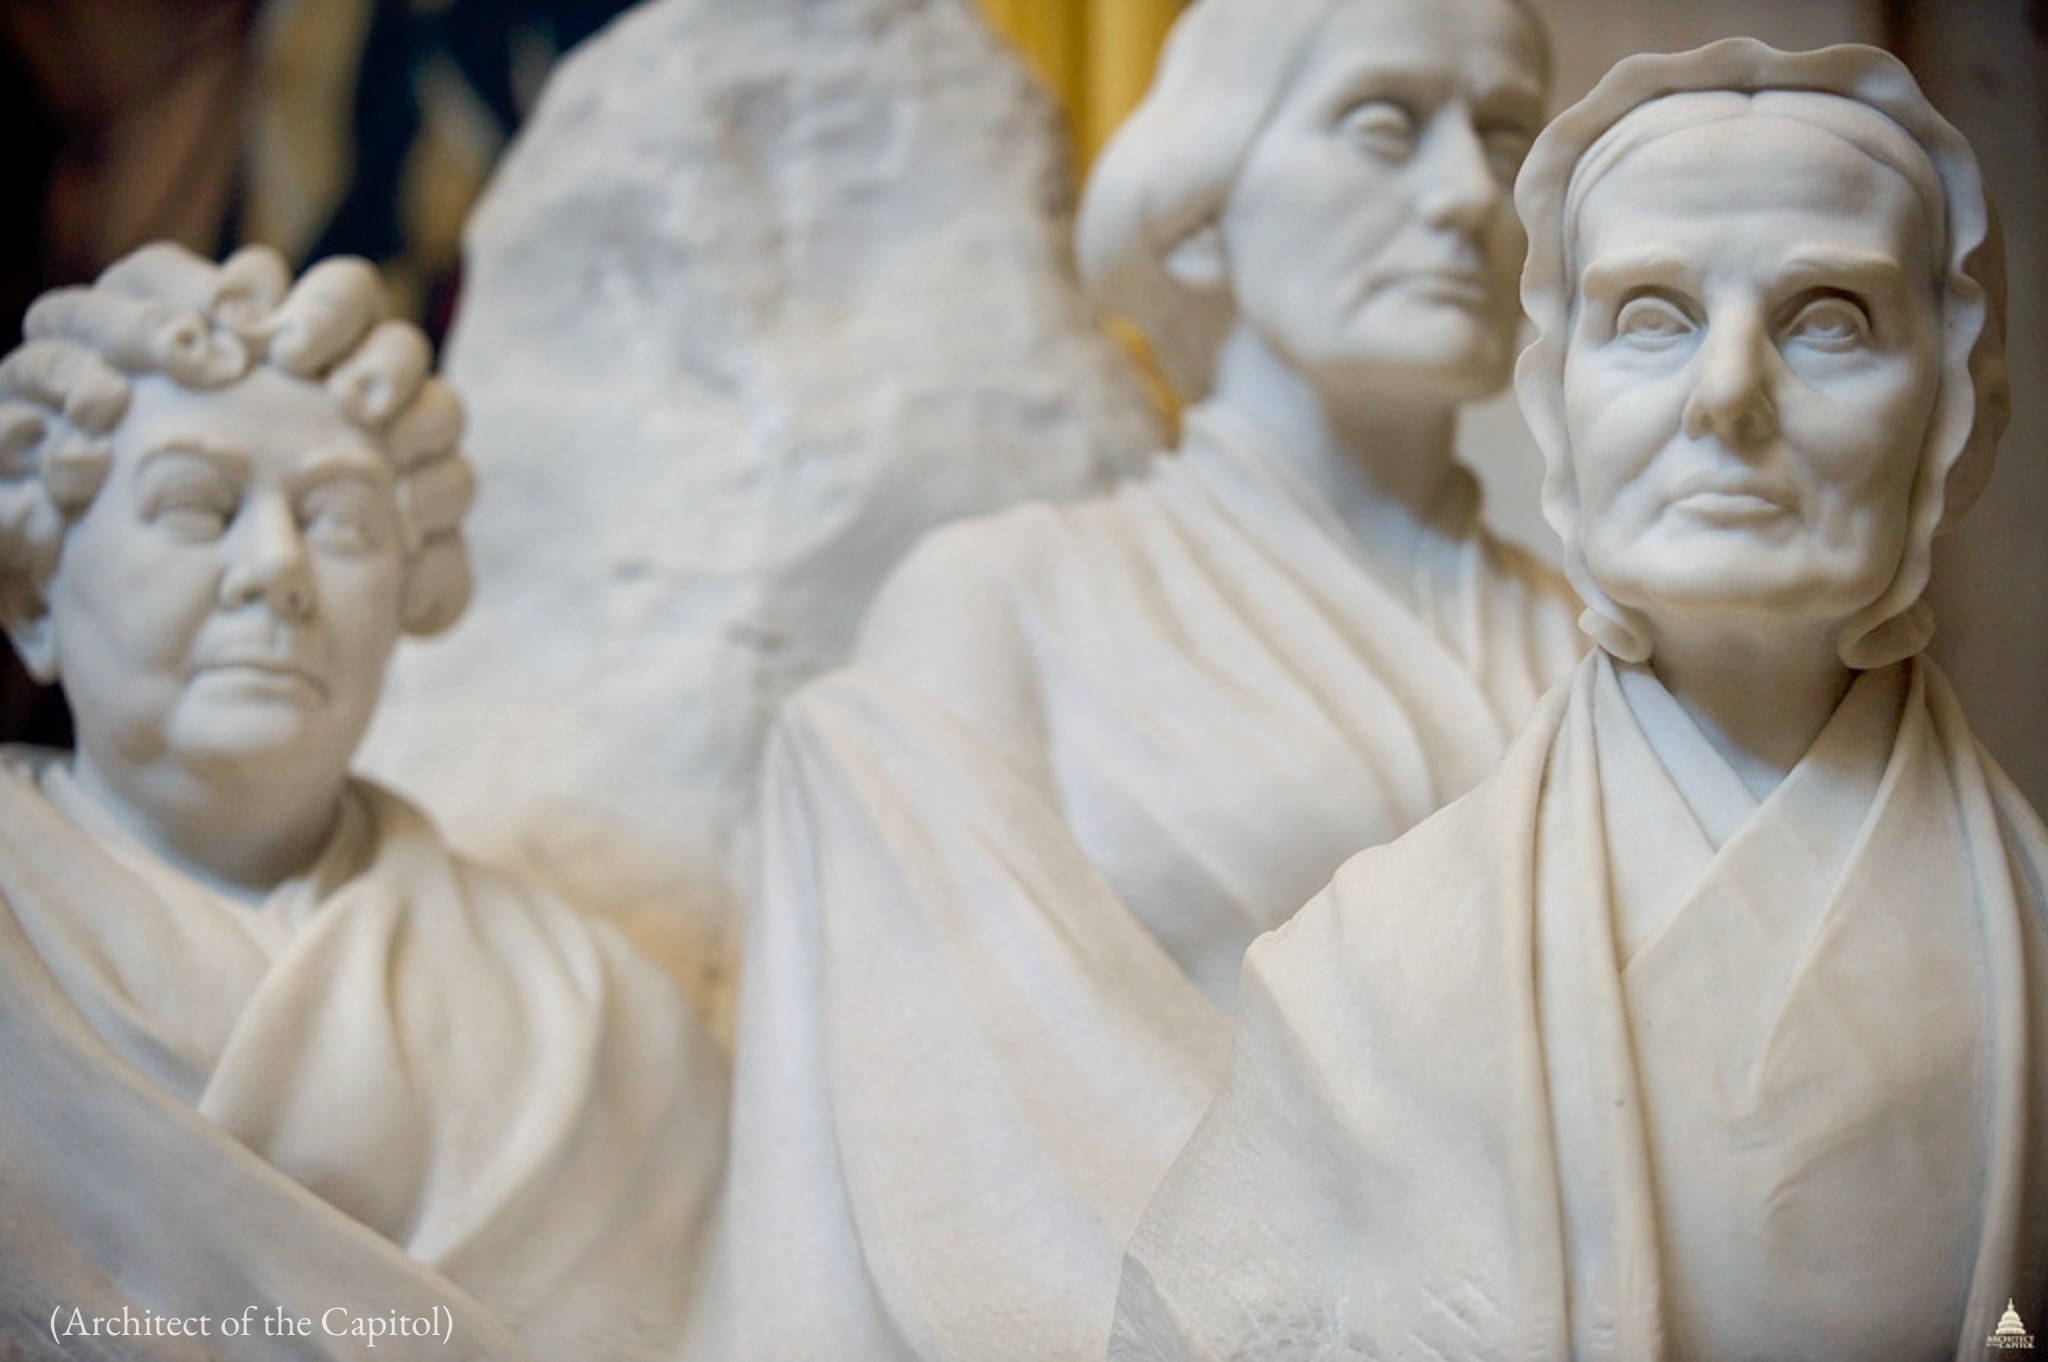 Close-up of sculpture incorporating marble busts of three women (Architect of the Capitol)